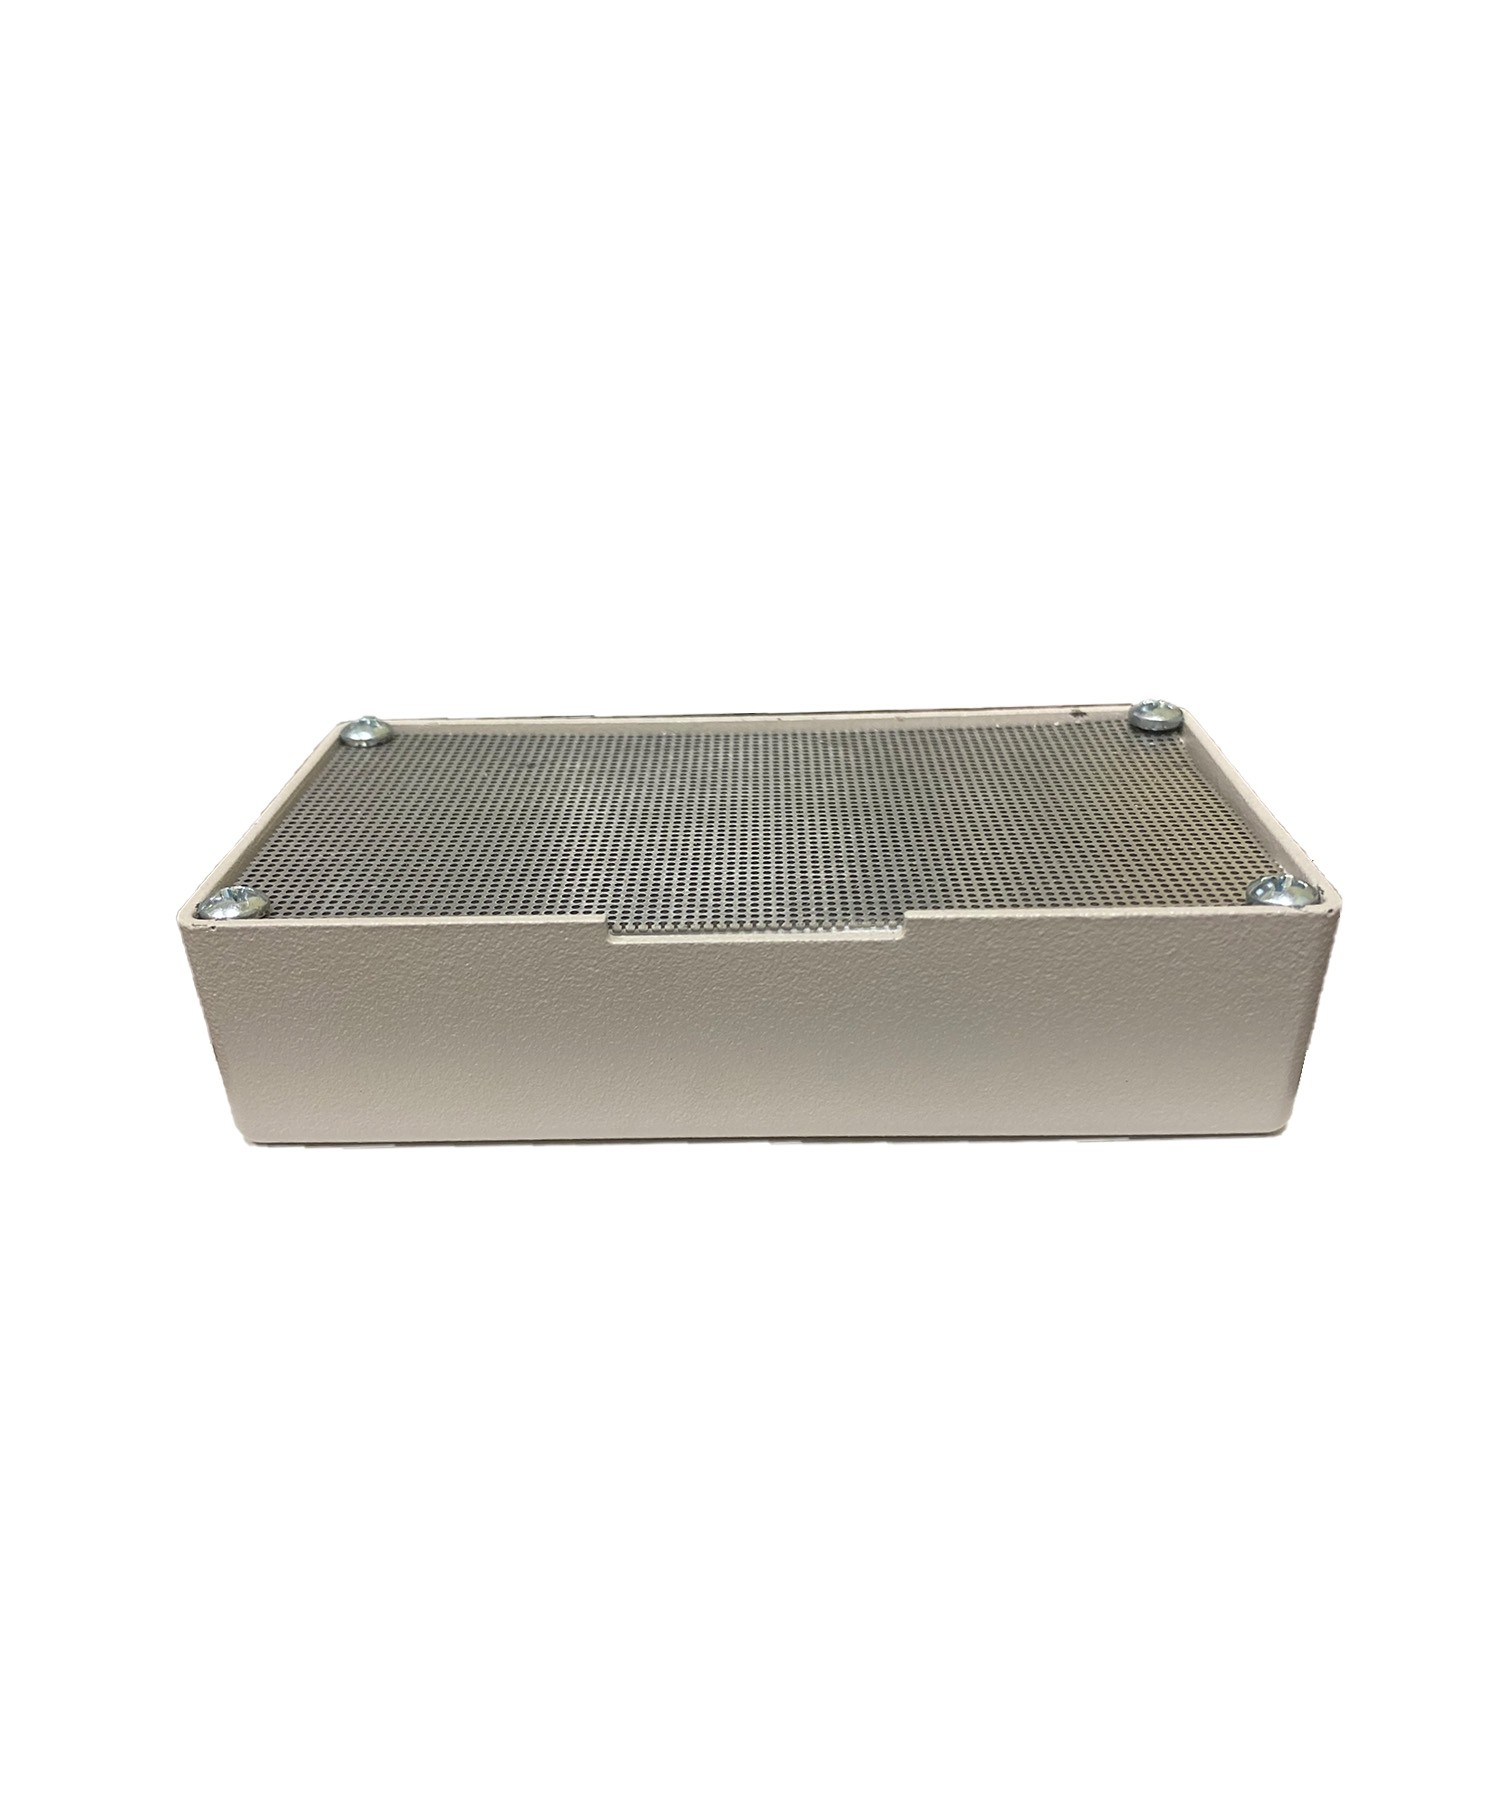 QuickFix Charcoal Bed Tray